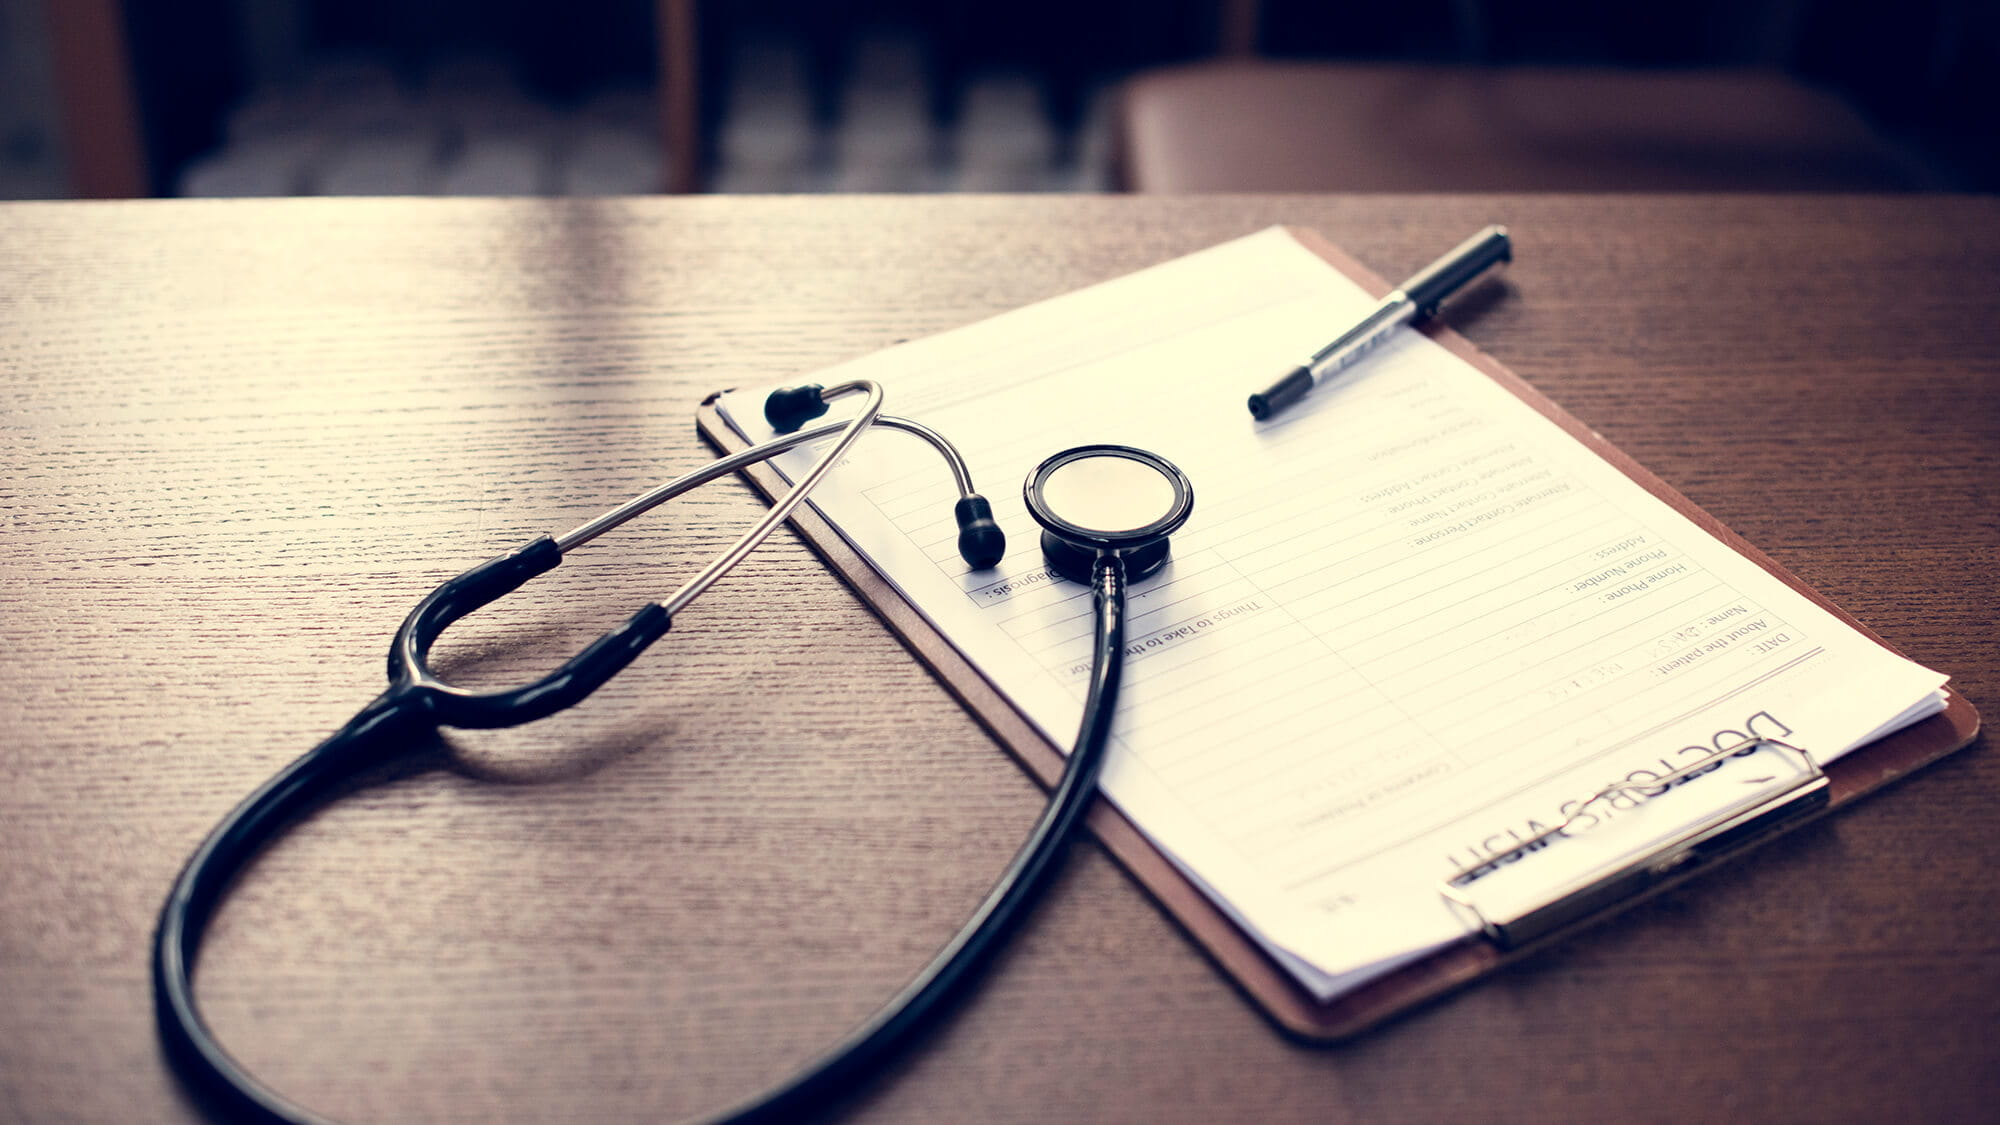 checkup form and stethoscope laying on desk